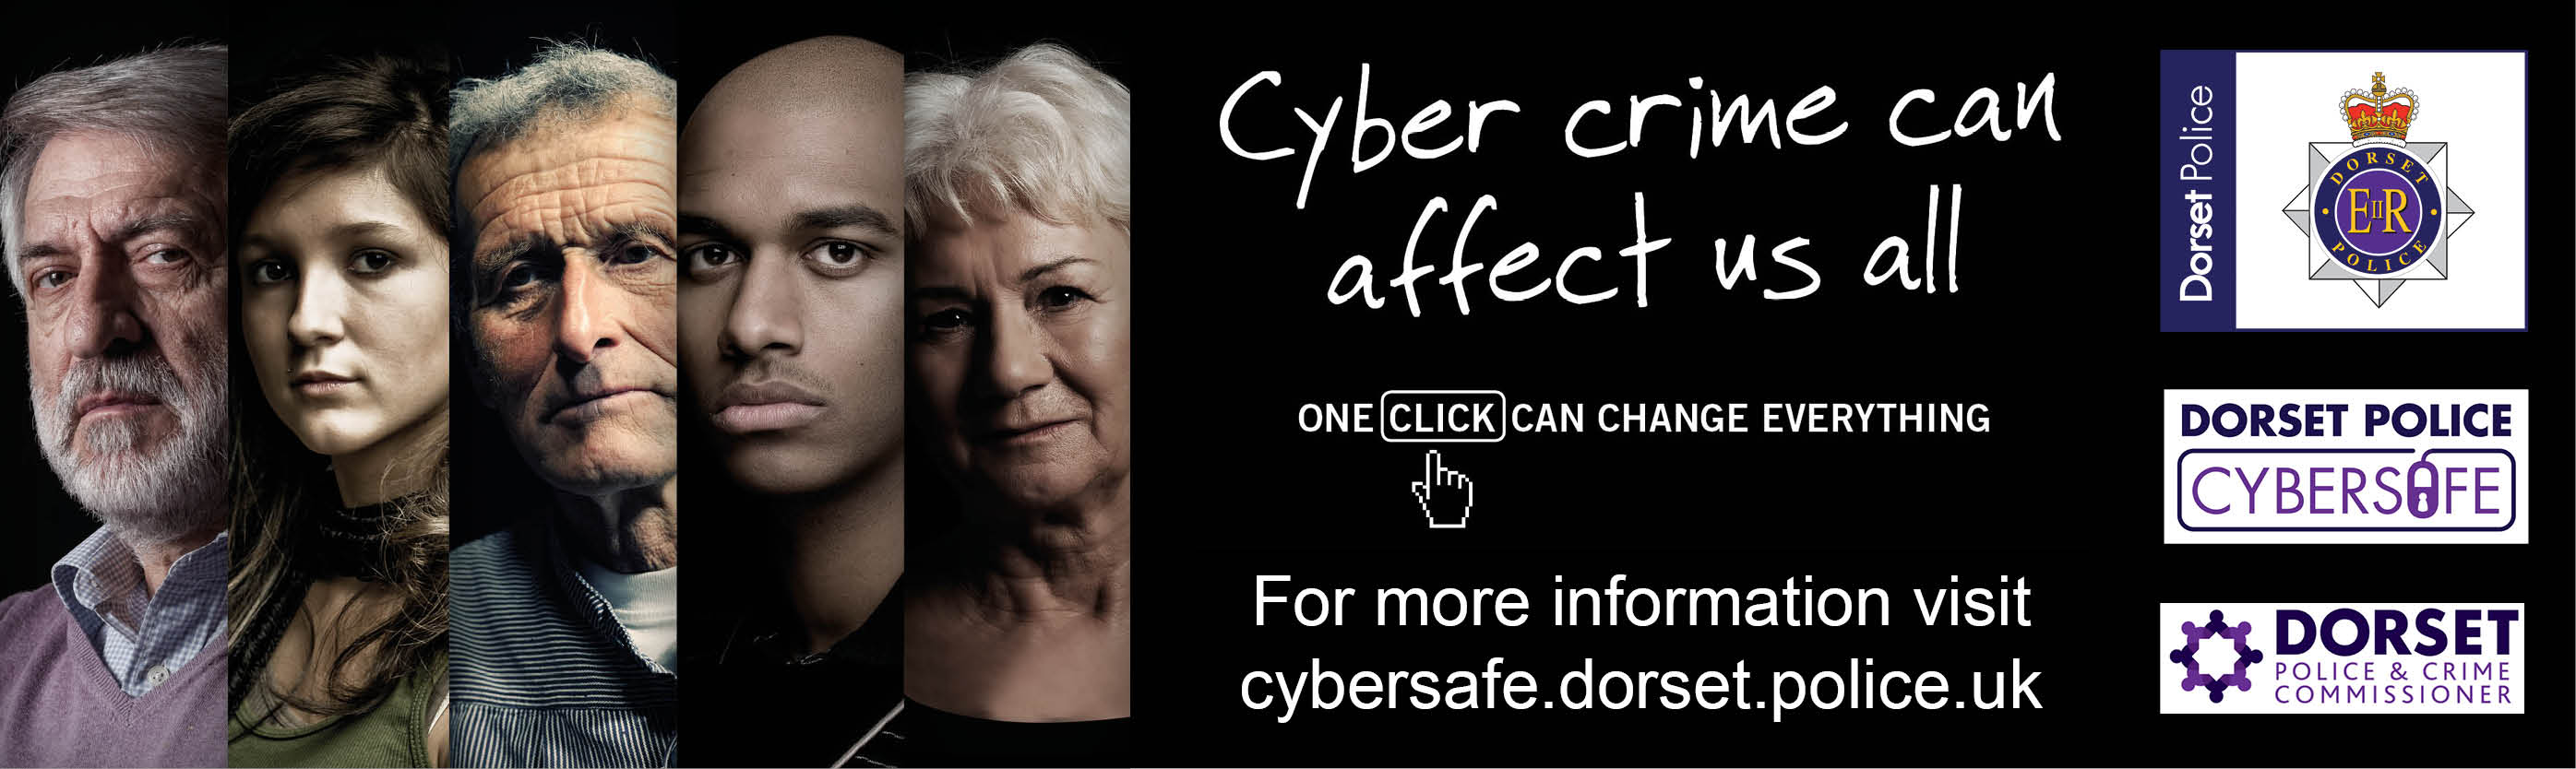 Cyber Crime - One click can change everything